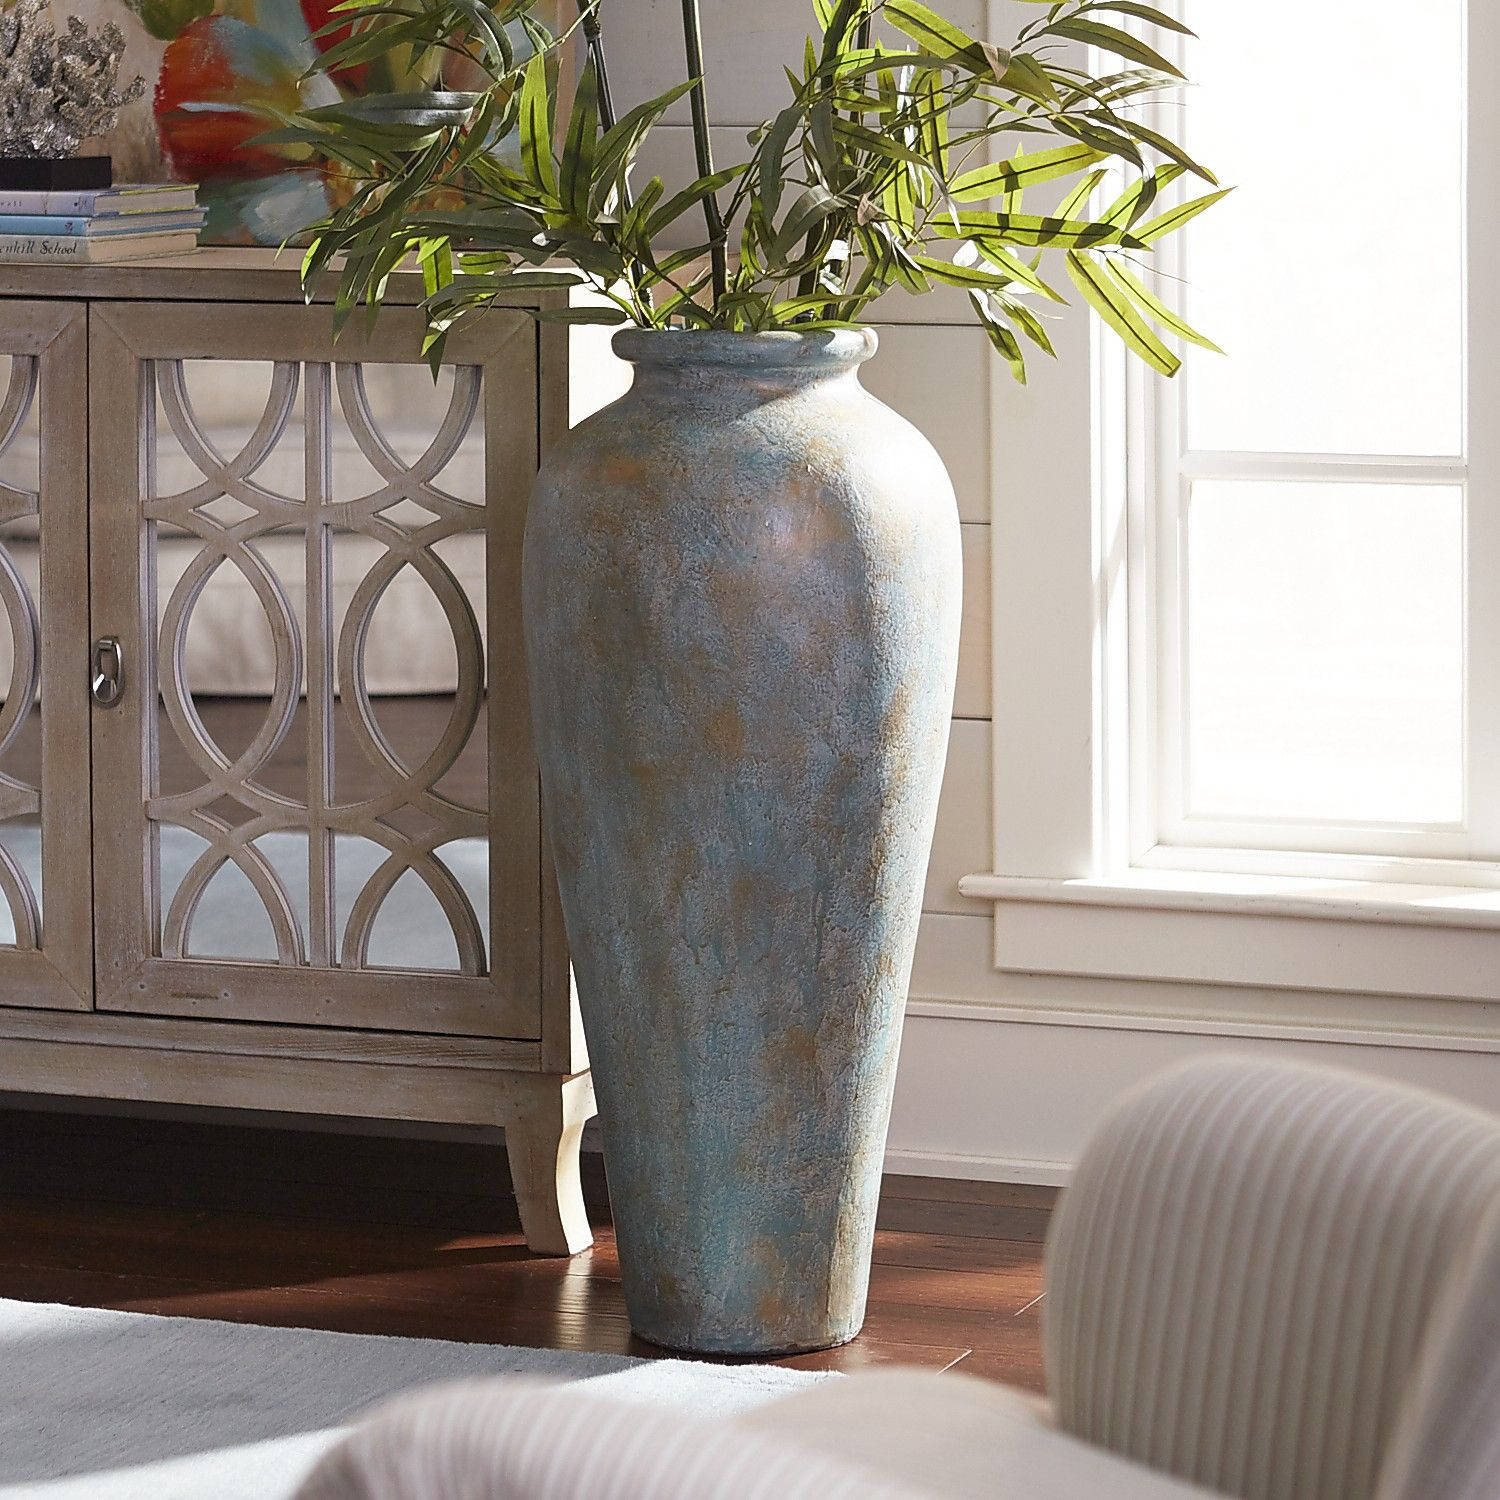 vases accent pieces of blue green patina urn floor vase products pinterest flooring intended for blue green patina urn floor vase